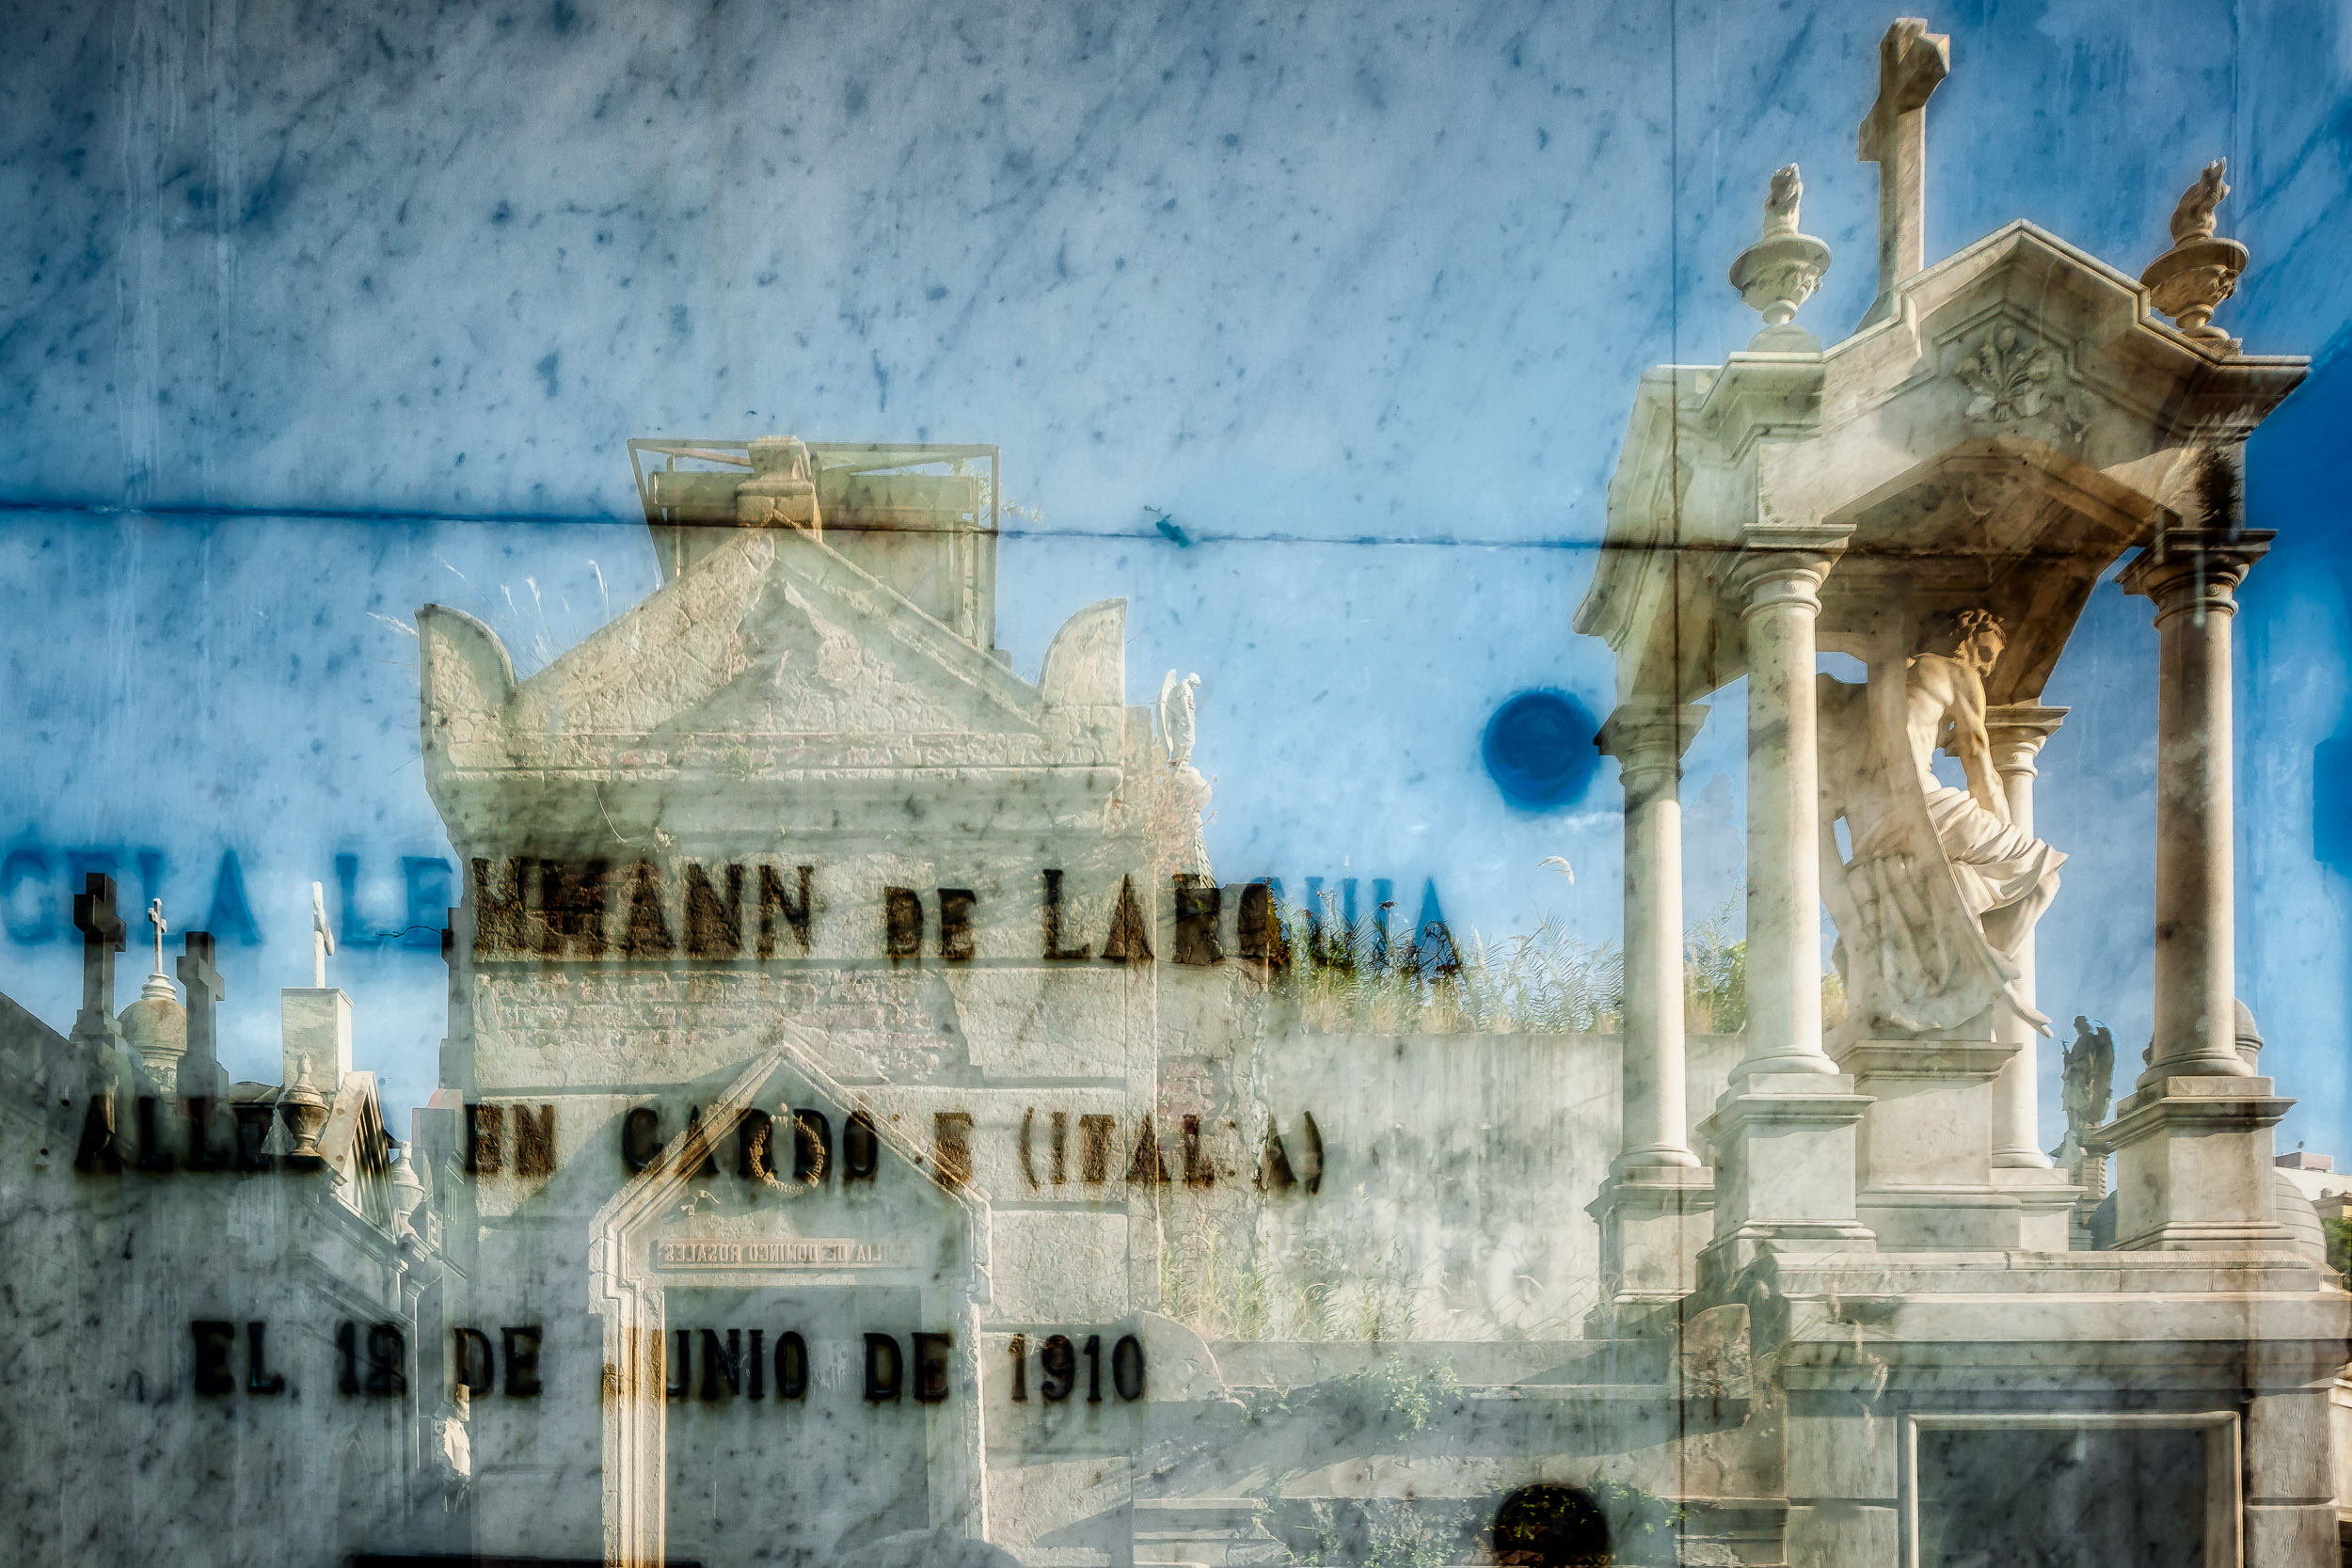 An  abstract image  made at the incredibly beautiful  La Recoleta Cemetery  in  Buenos Aires, Argentina .